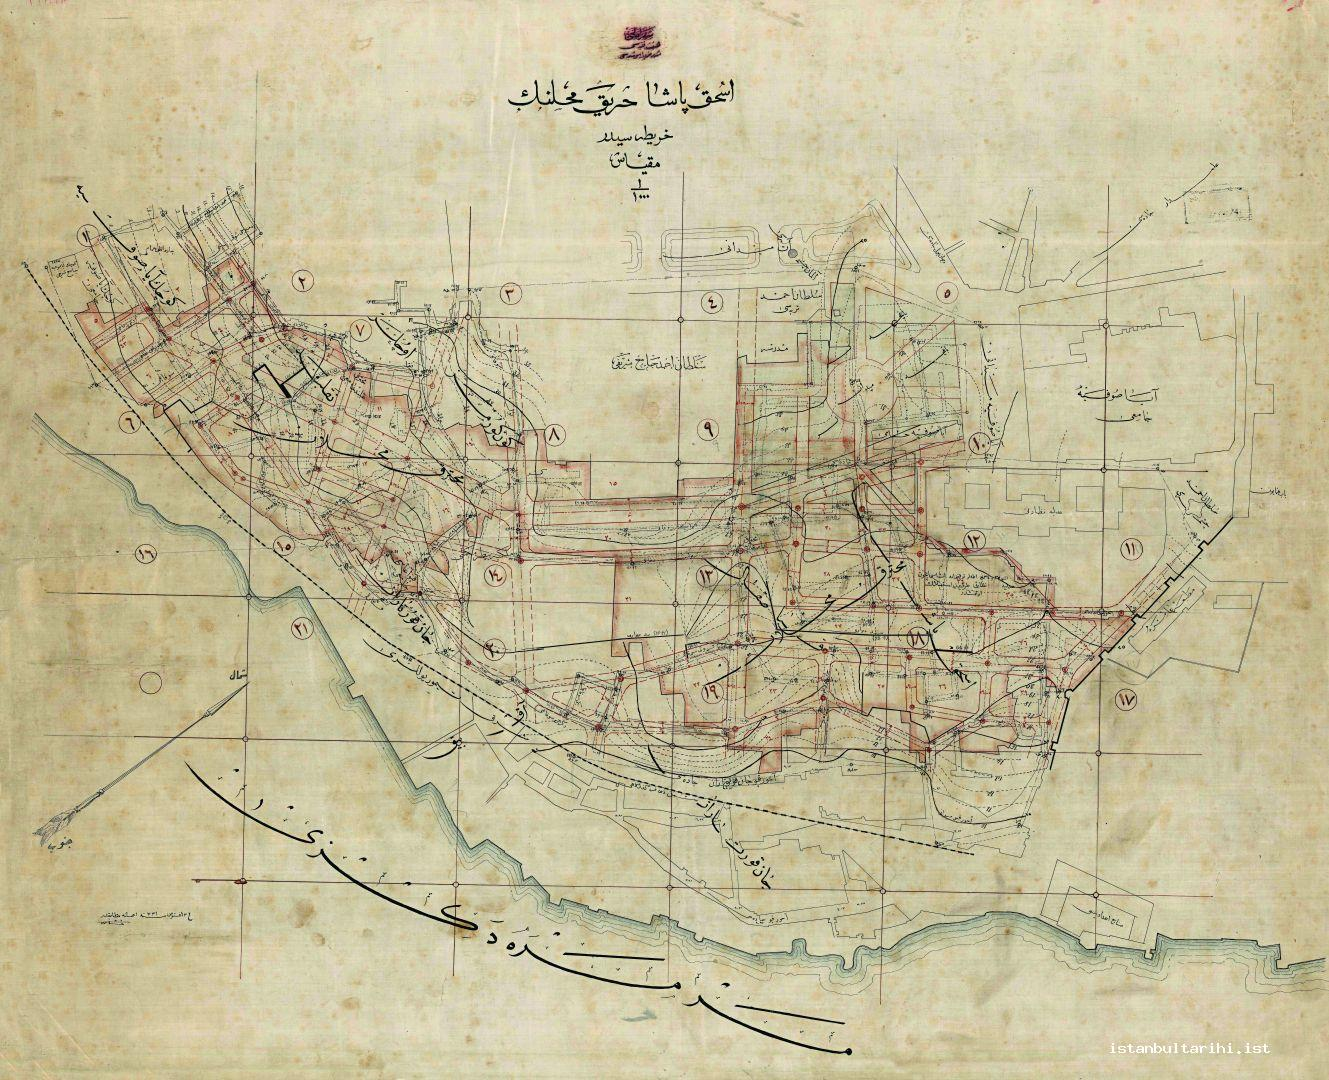 12- The map dated 16 August 1915 about the areas of İshak Paşa Fire (Istanbul Metropolitan Municipality, Atatürk Library)